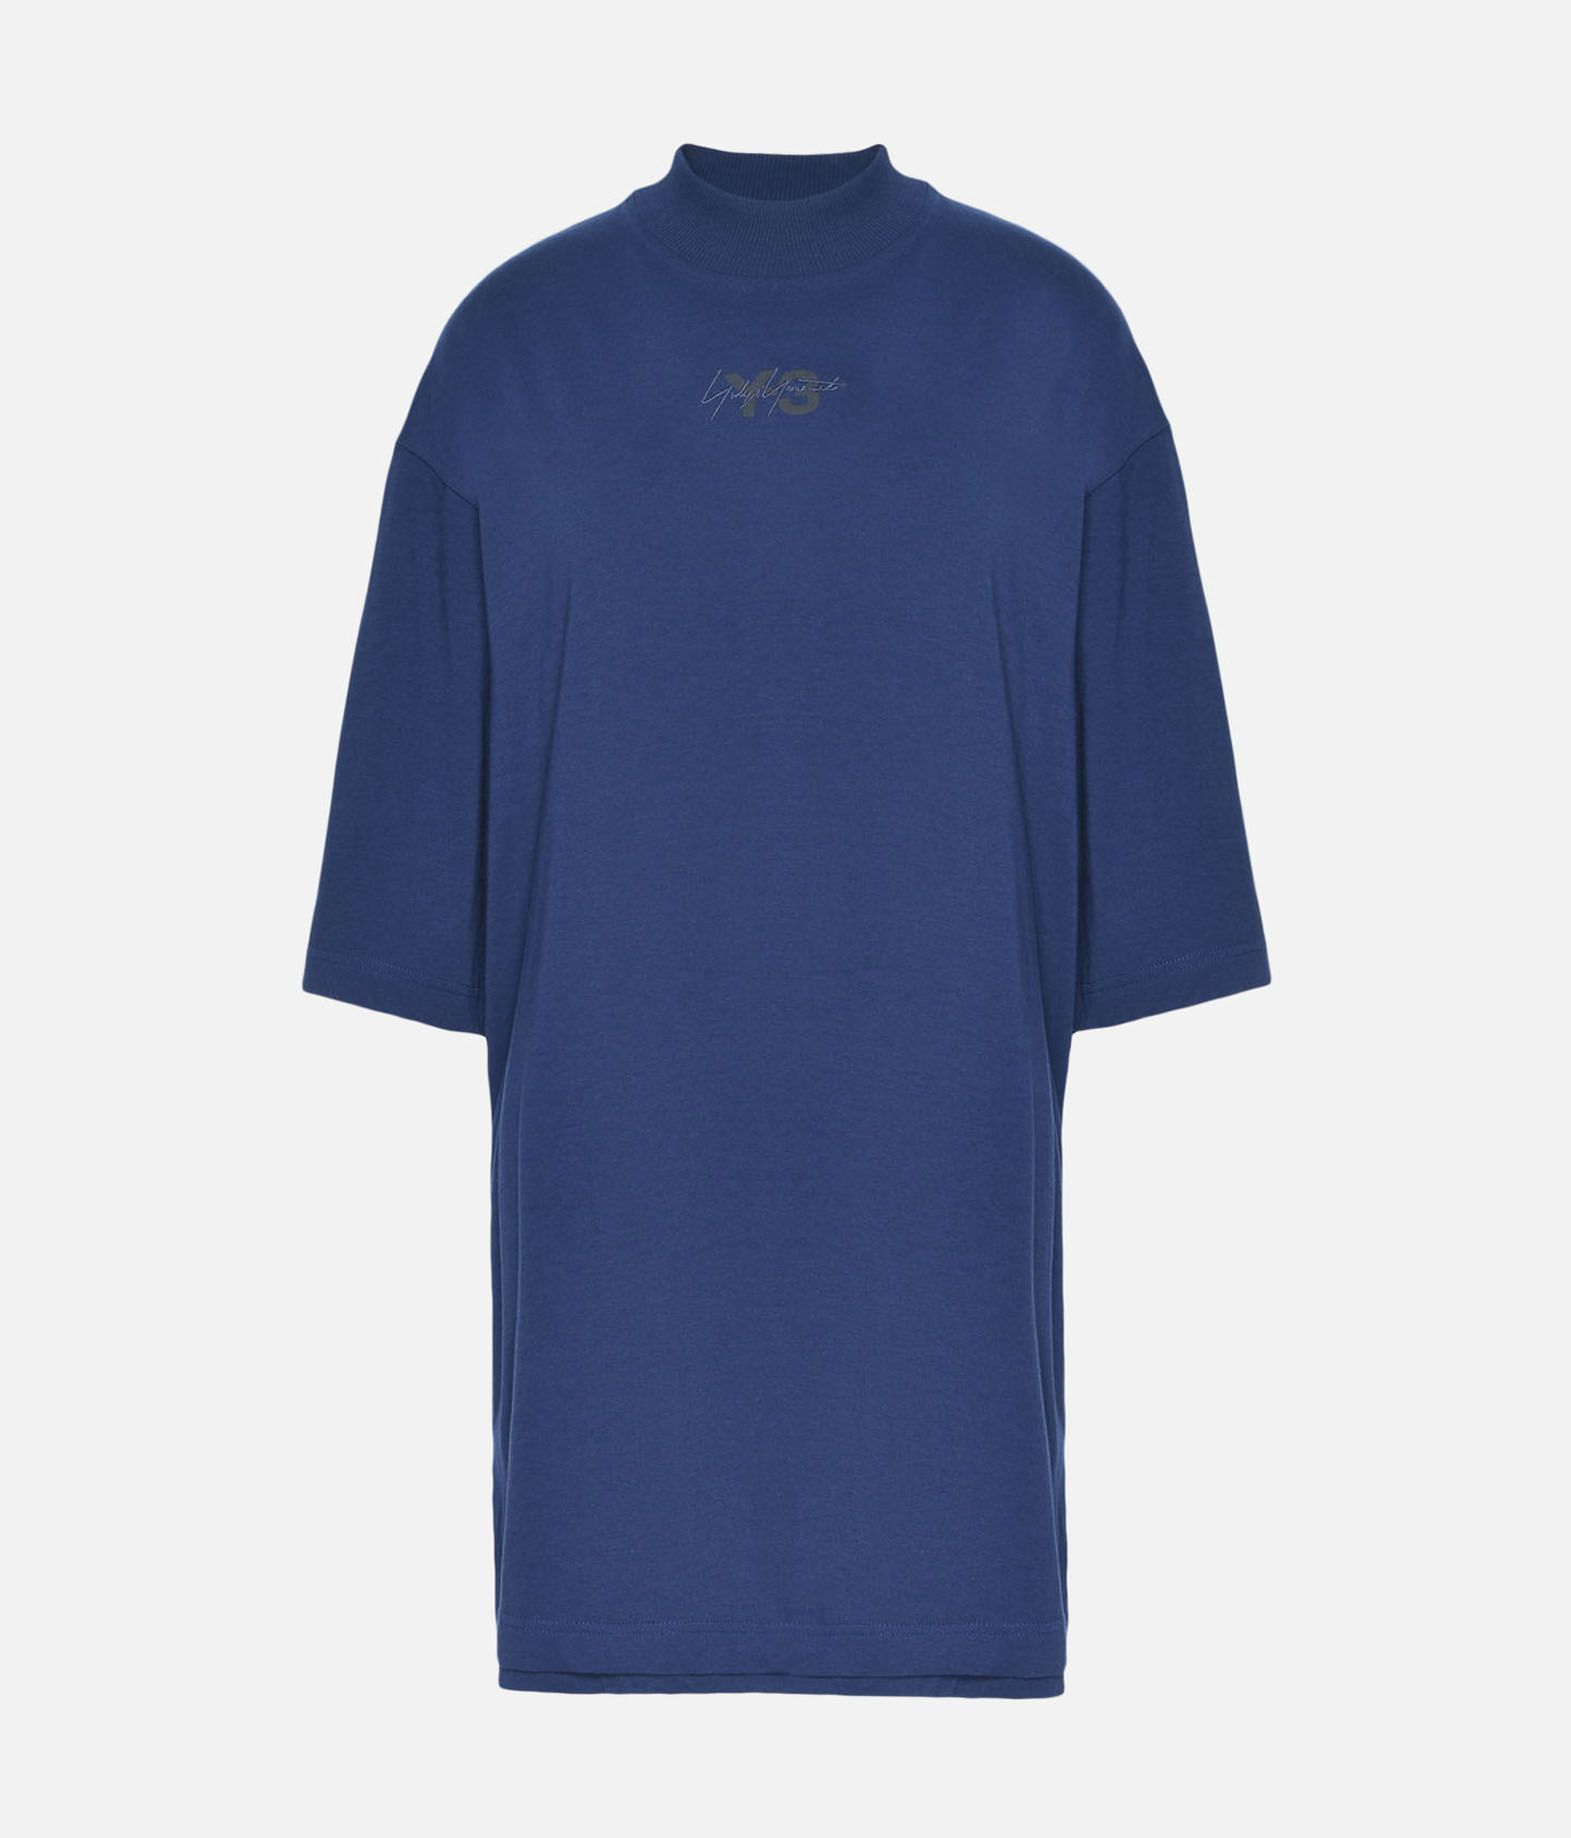 Y-3 Y-3 Signature Long Tee Short sleeve t-shirt Woman f